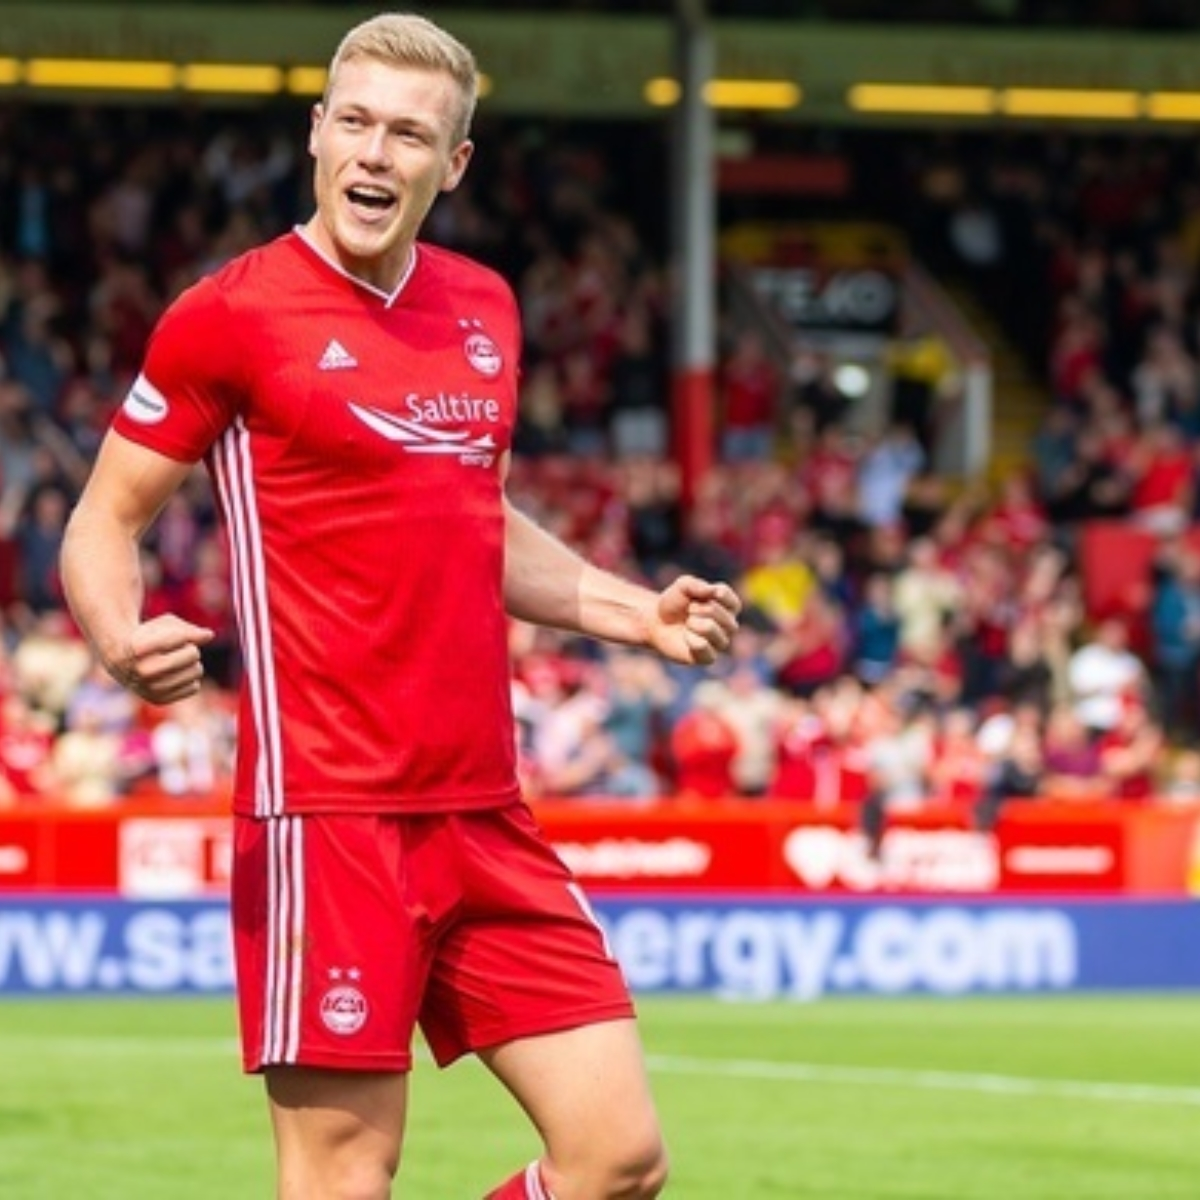 Aberdeen v Hearts Images